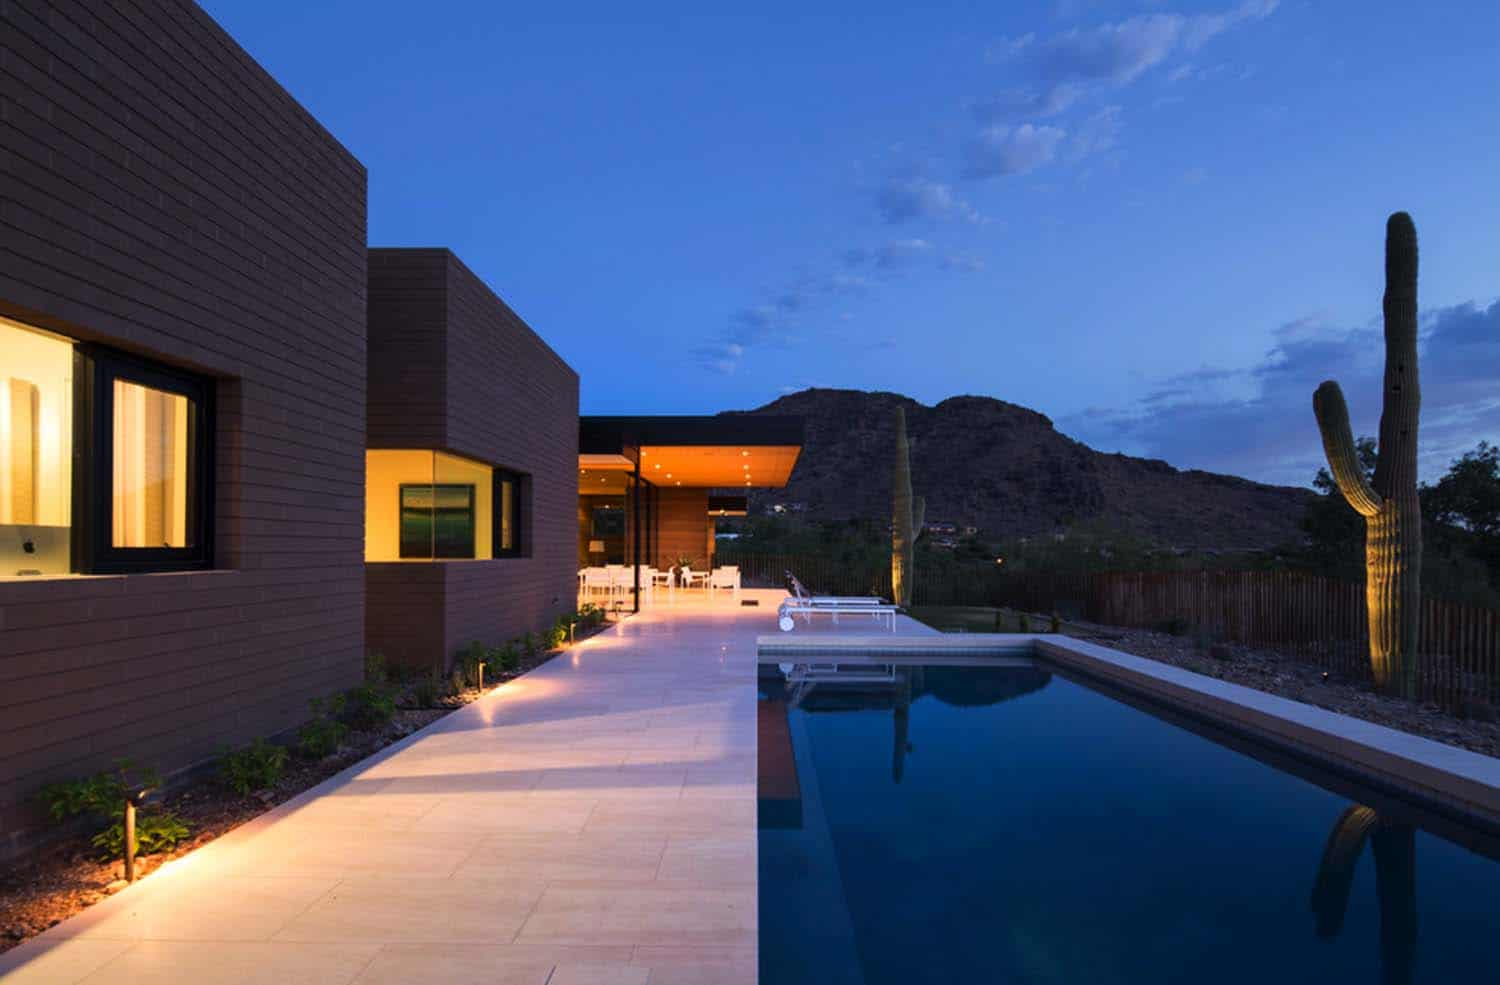 Modern Rammed Earth Home-Kendle Design-21-1 Kindesign